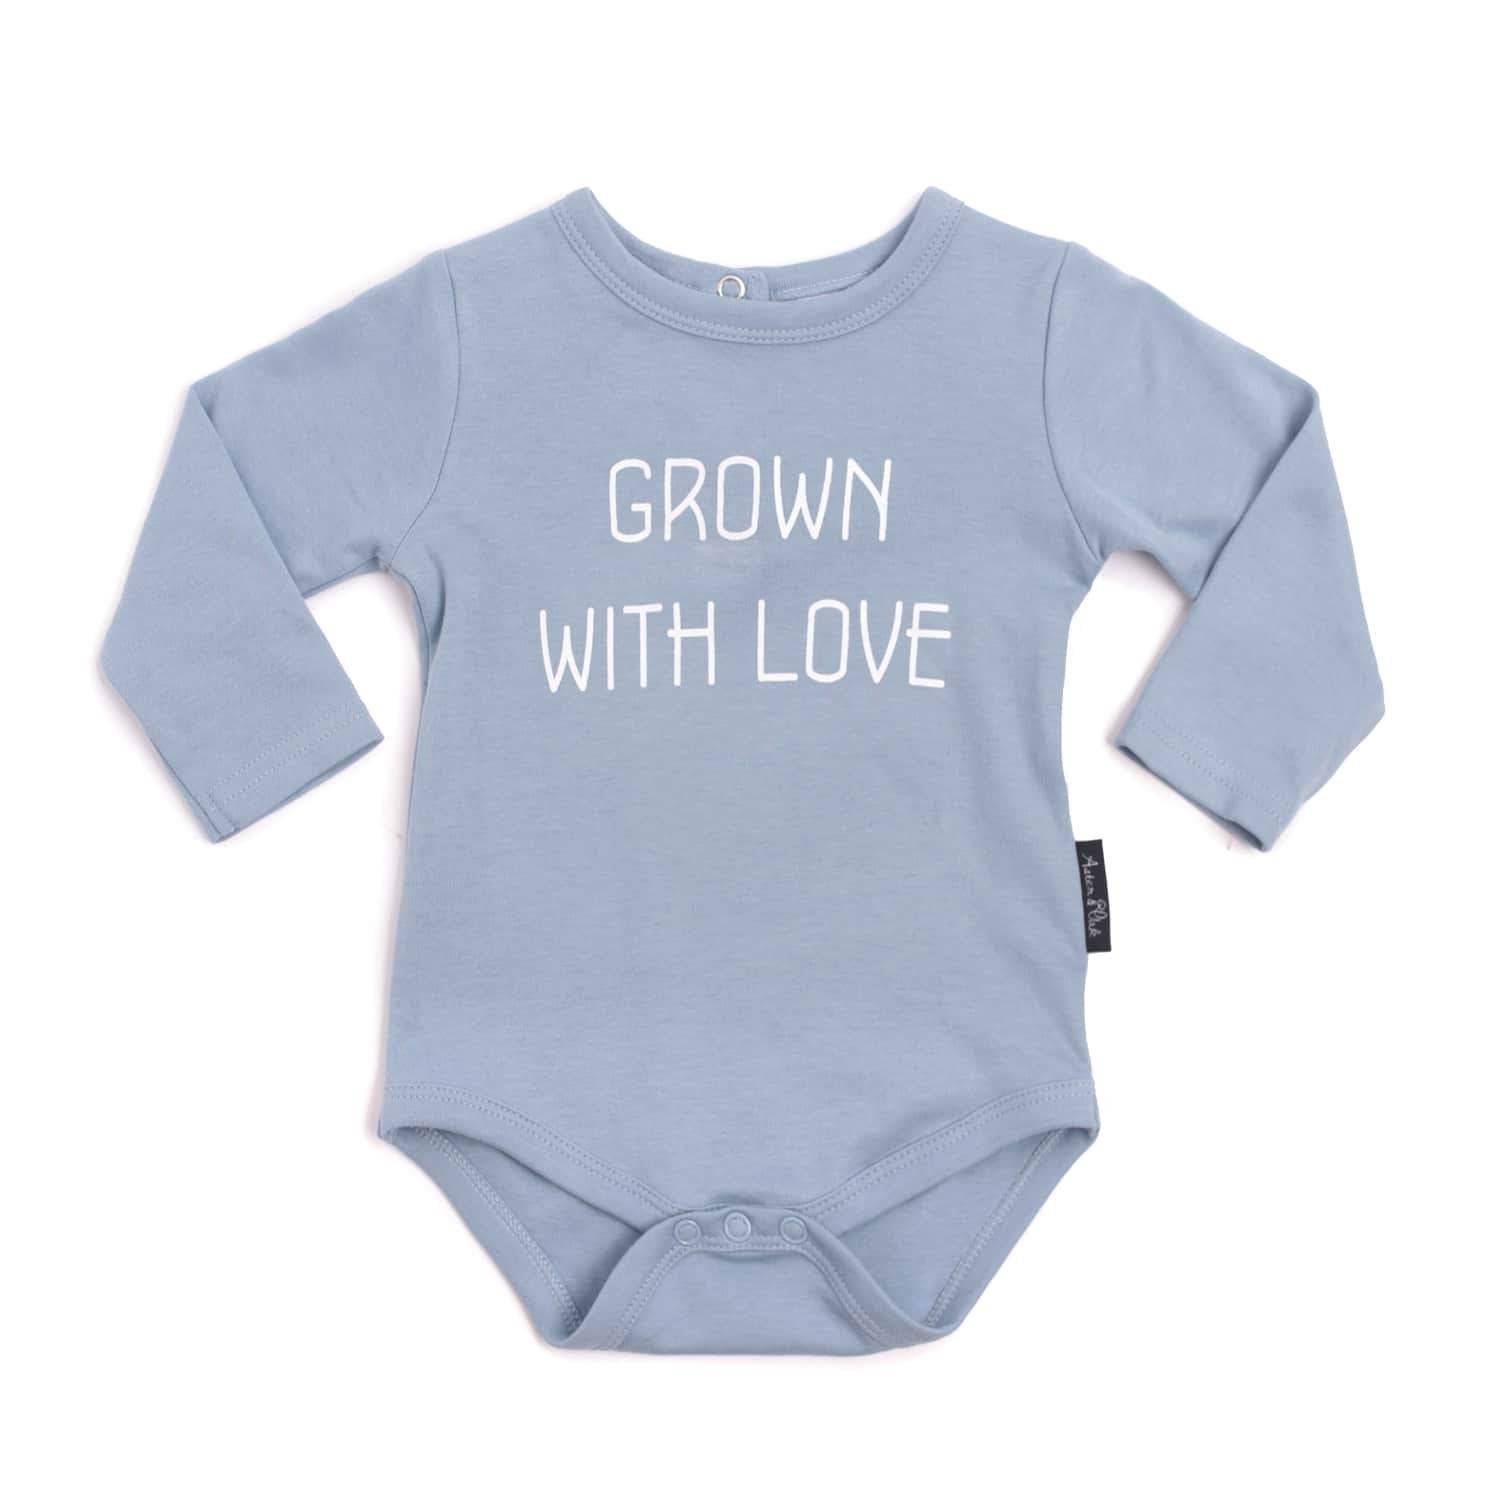 PRE-ORDER: Aster & Oak Organic Cotton Grown with Love Onesie (Blue) - Naked Baby Eco Boutique